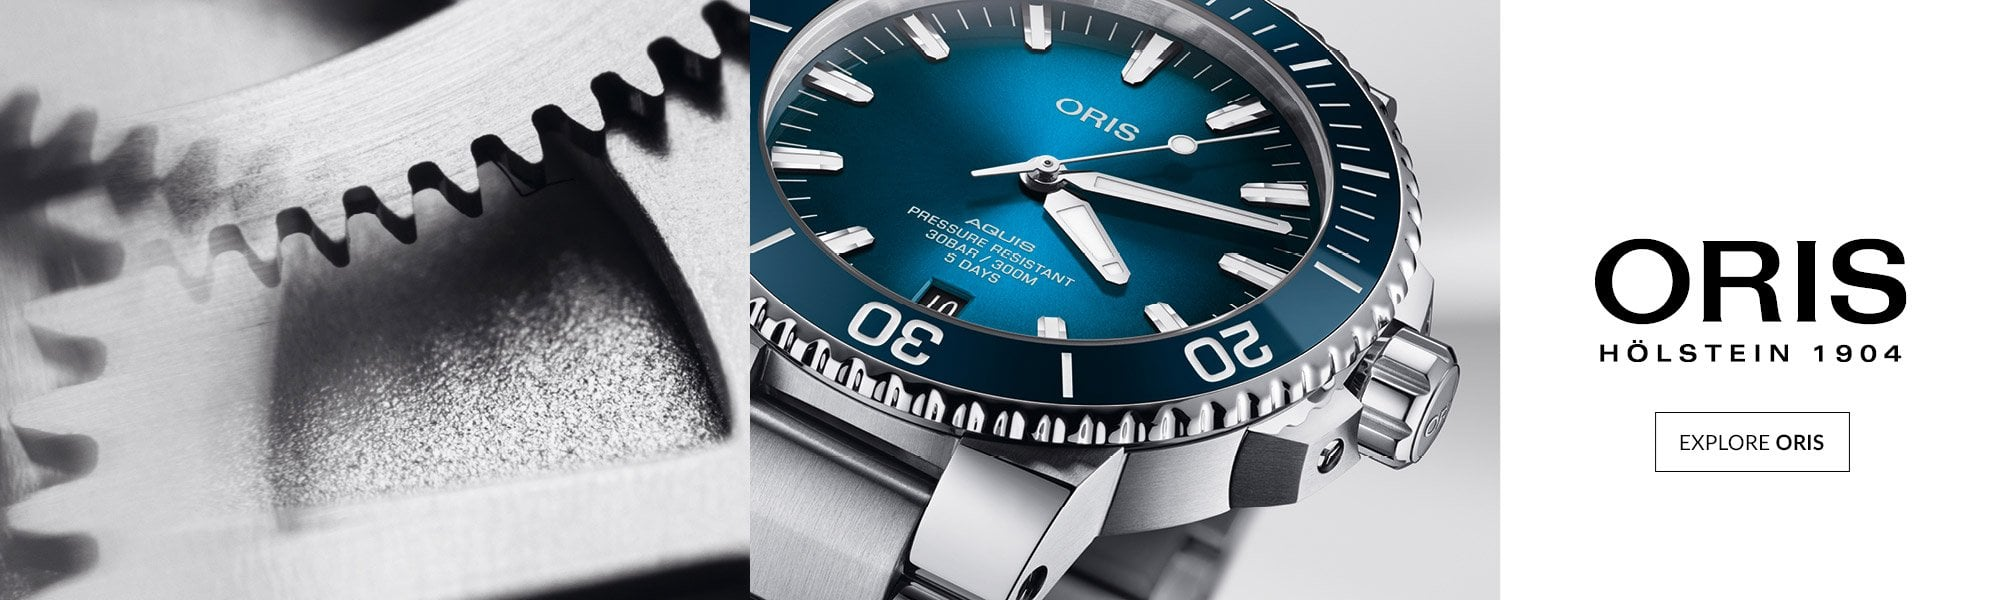 Oris Watches - Explore the Collection